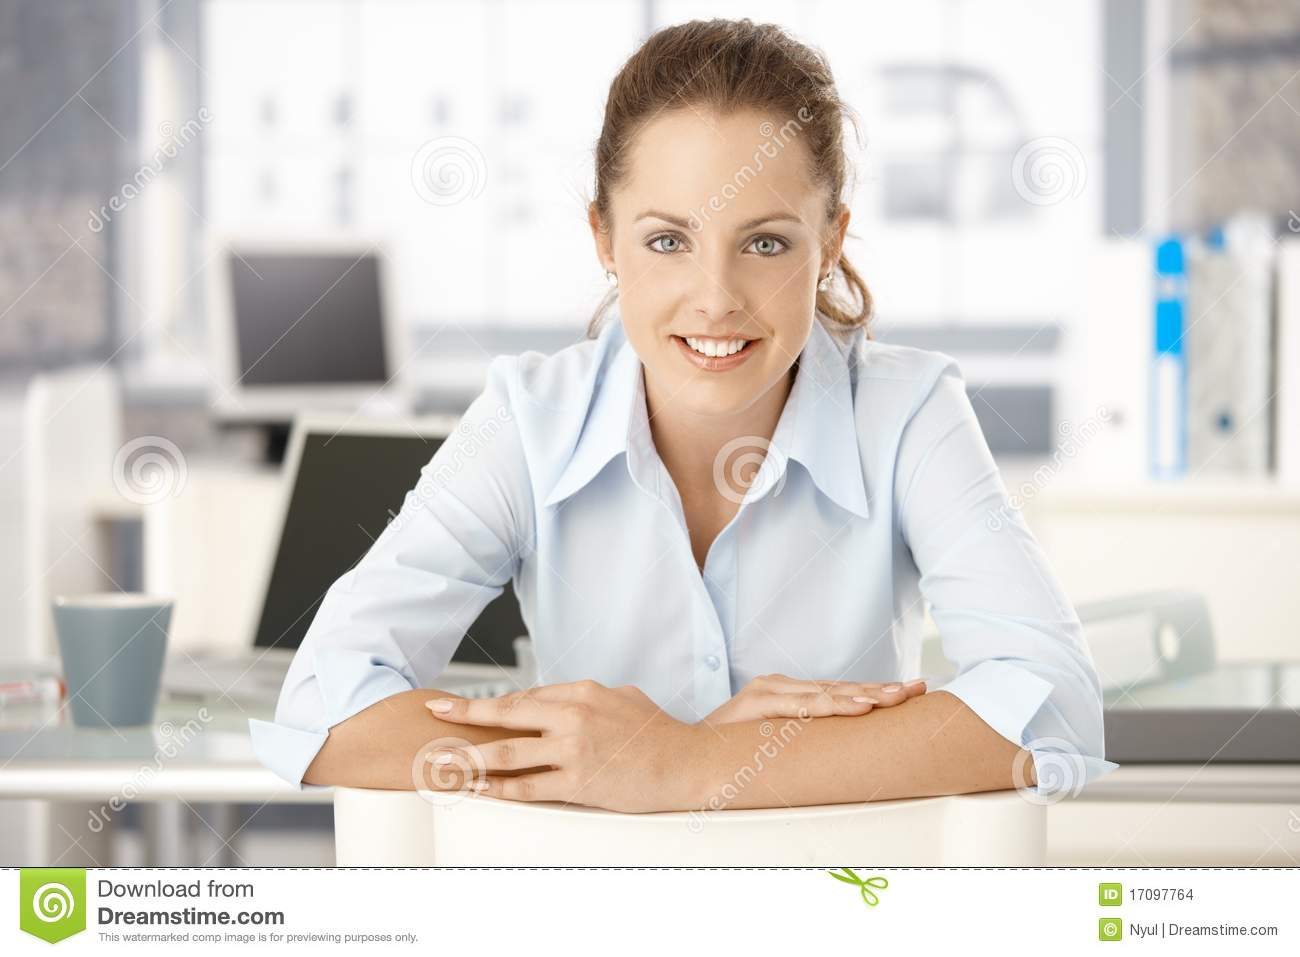 Desk office sitting smiling woman young